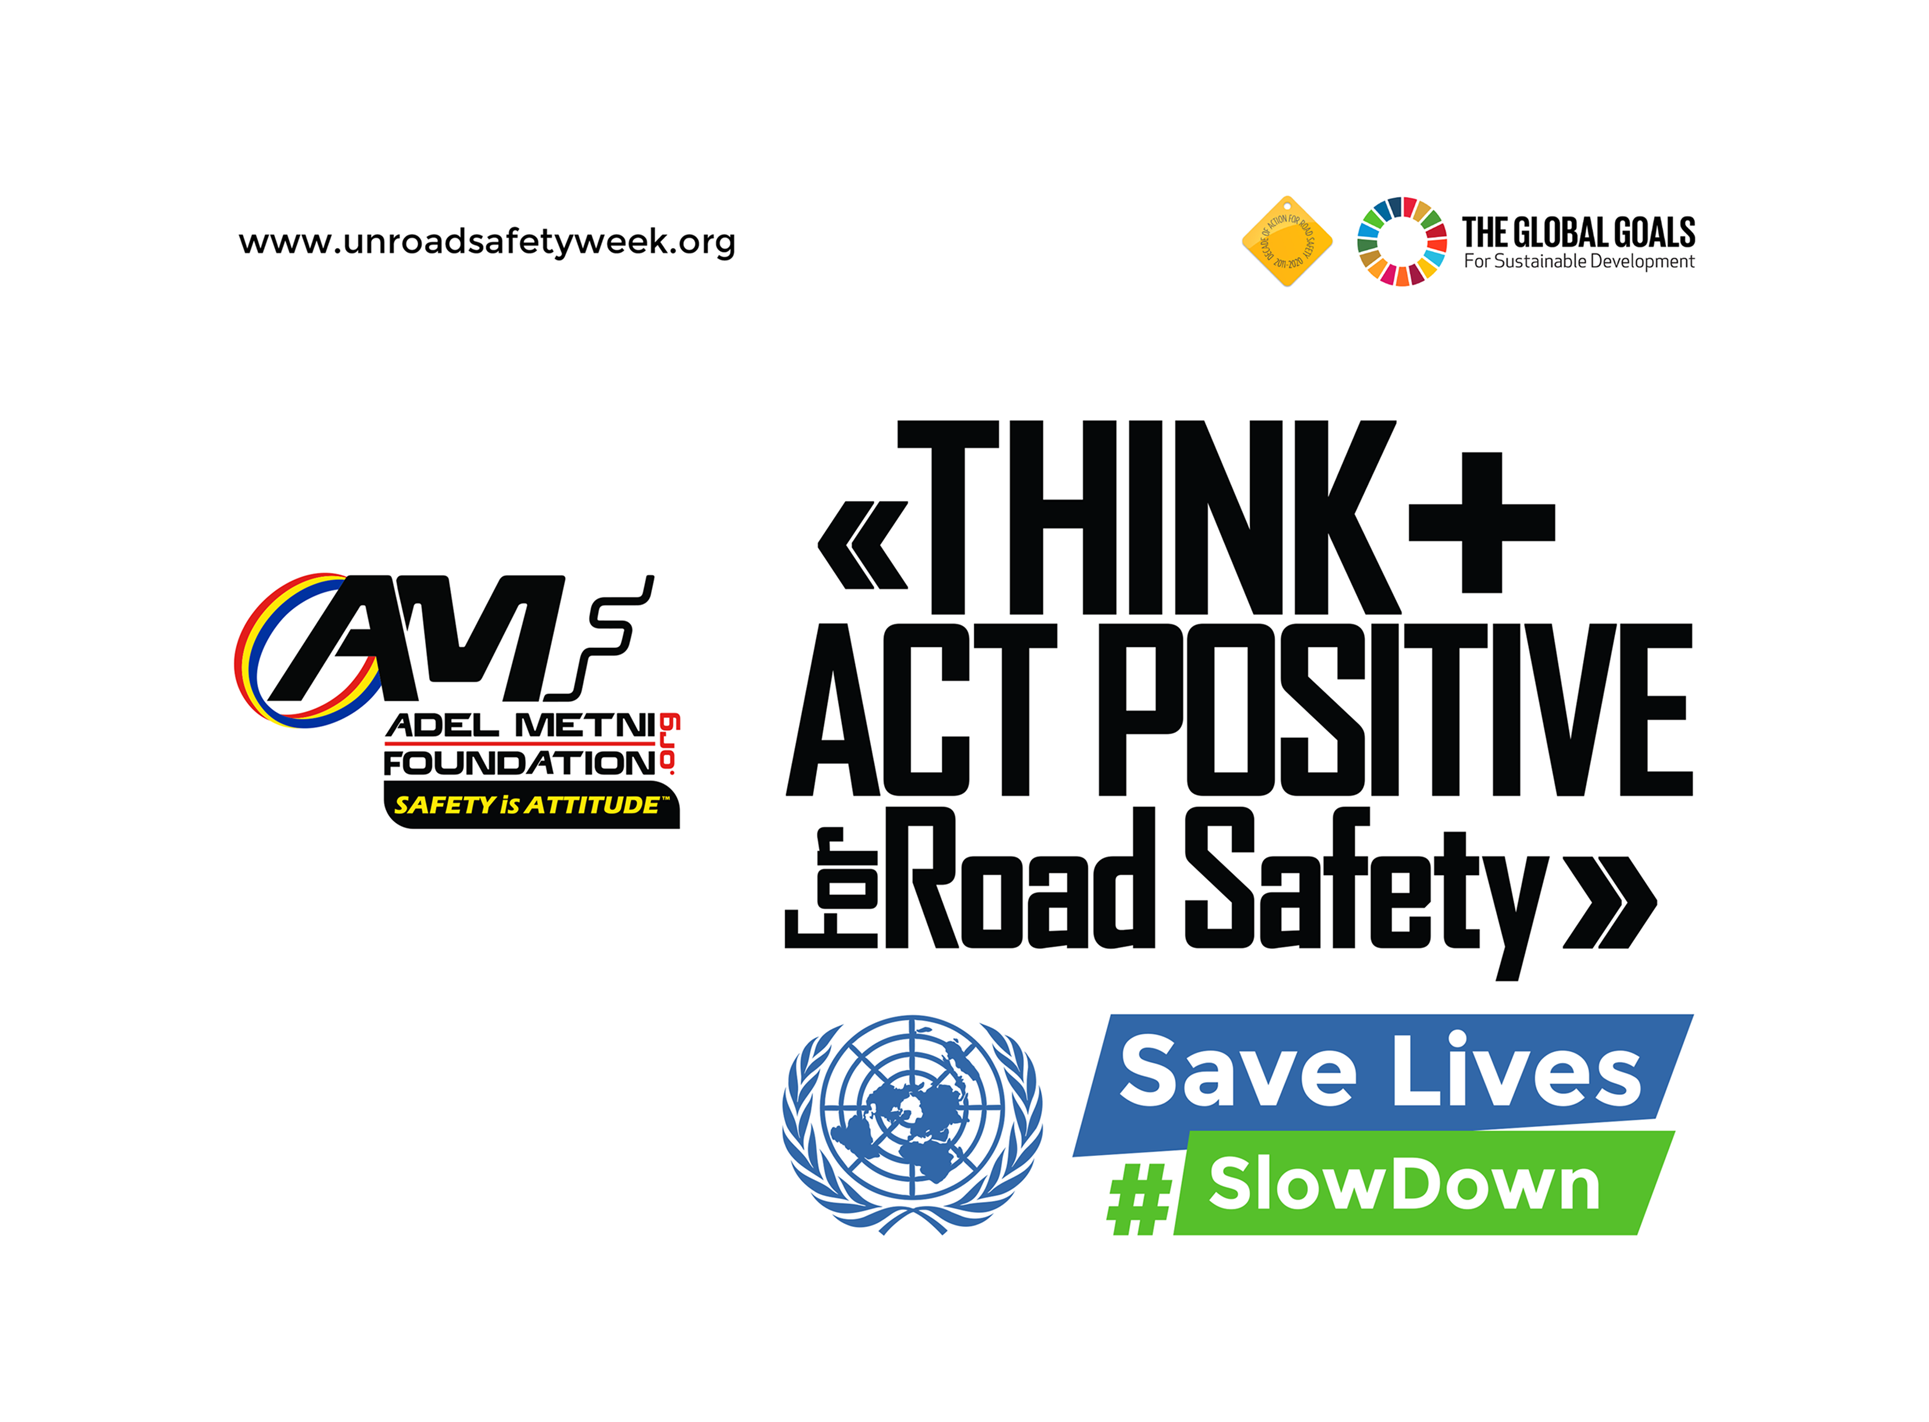 The 4th Annual UN Road Safety Week: Slow Down, Save Lives!